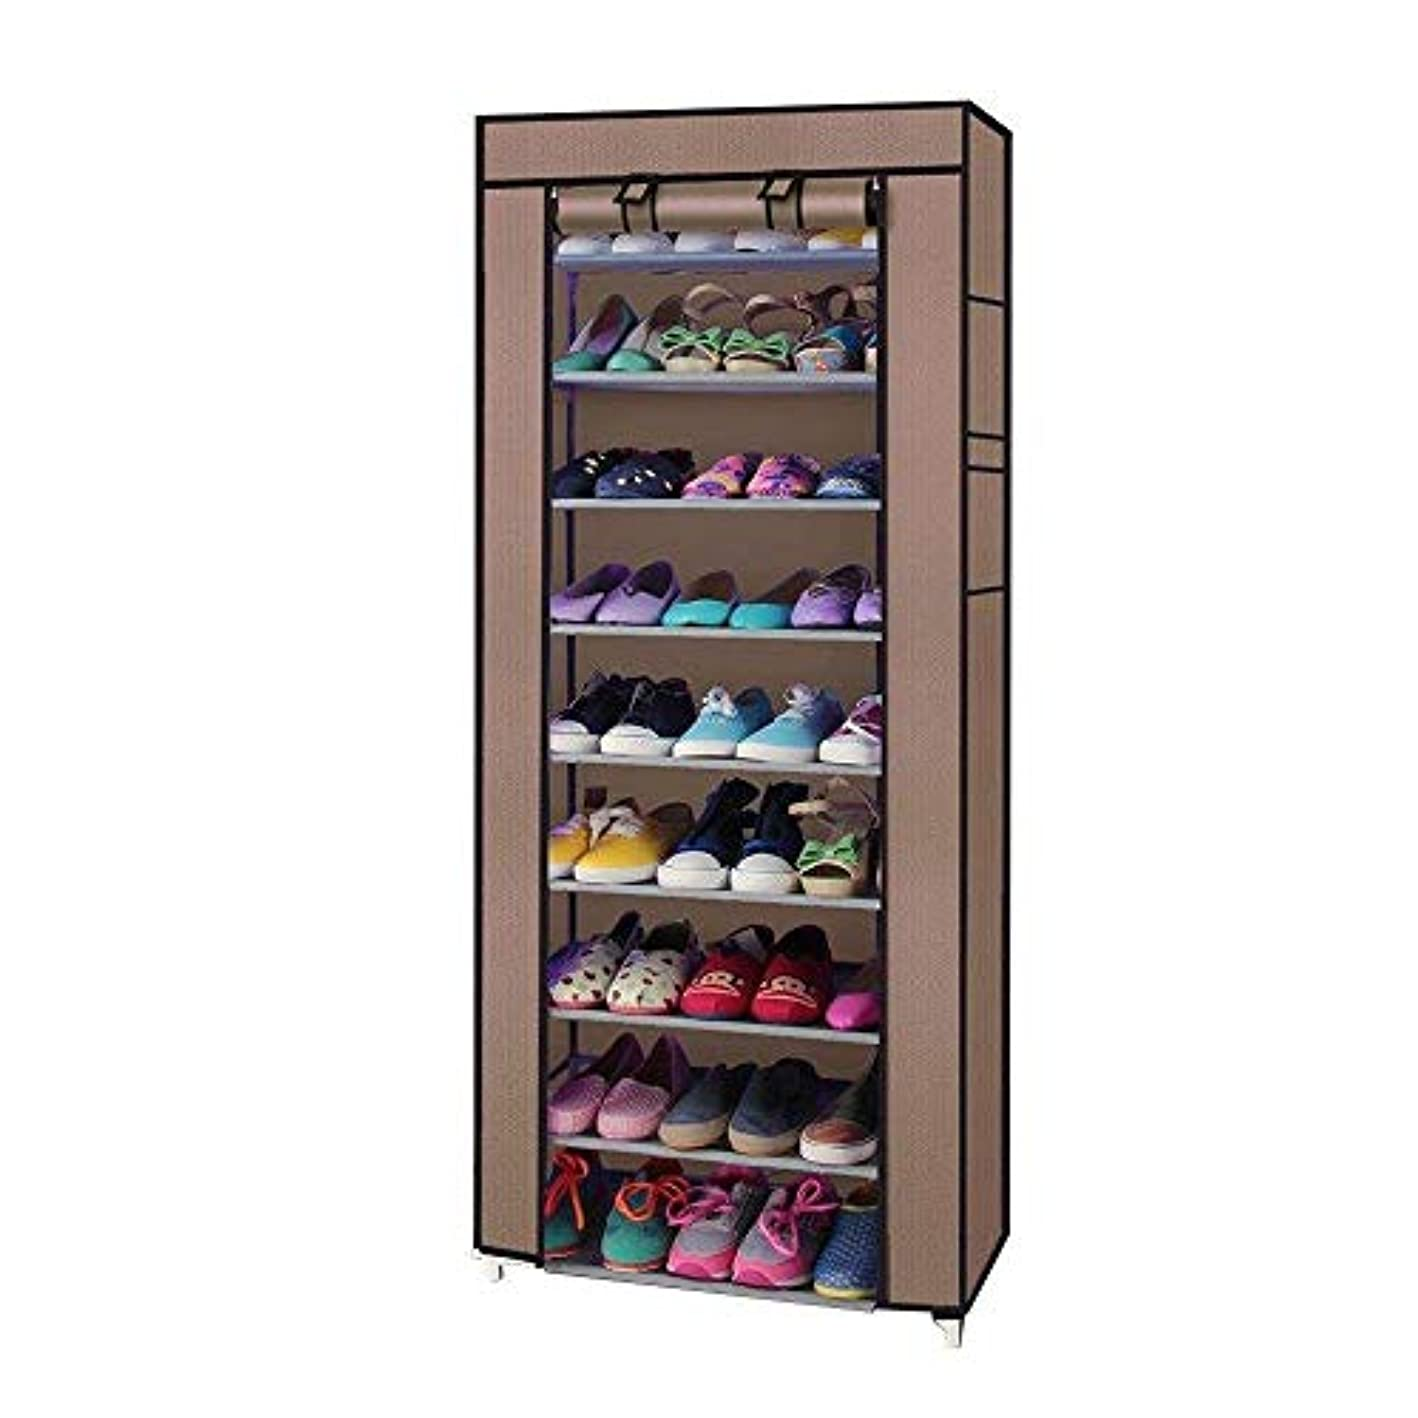 Weelongha 10 Tiers 9 Lattices Shoe Rack Shelf Storage Closet Organizer Cabinet with Cover Tier Portable Single Boot Home Layer Double Rows